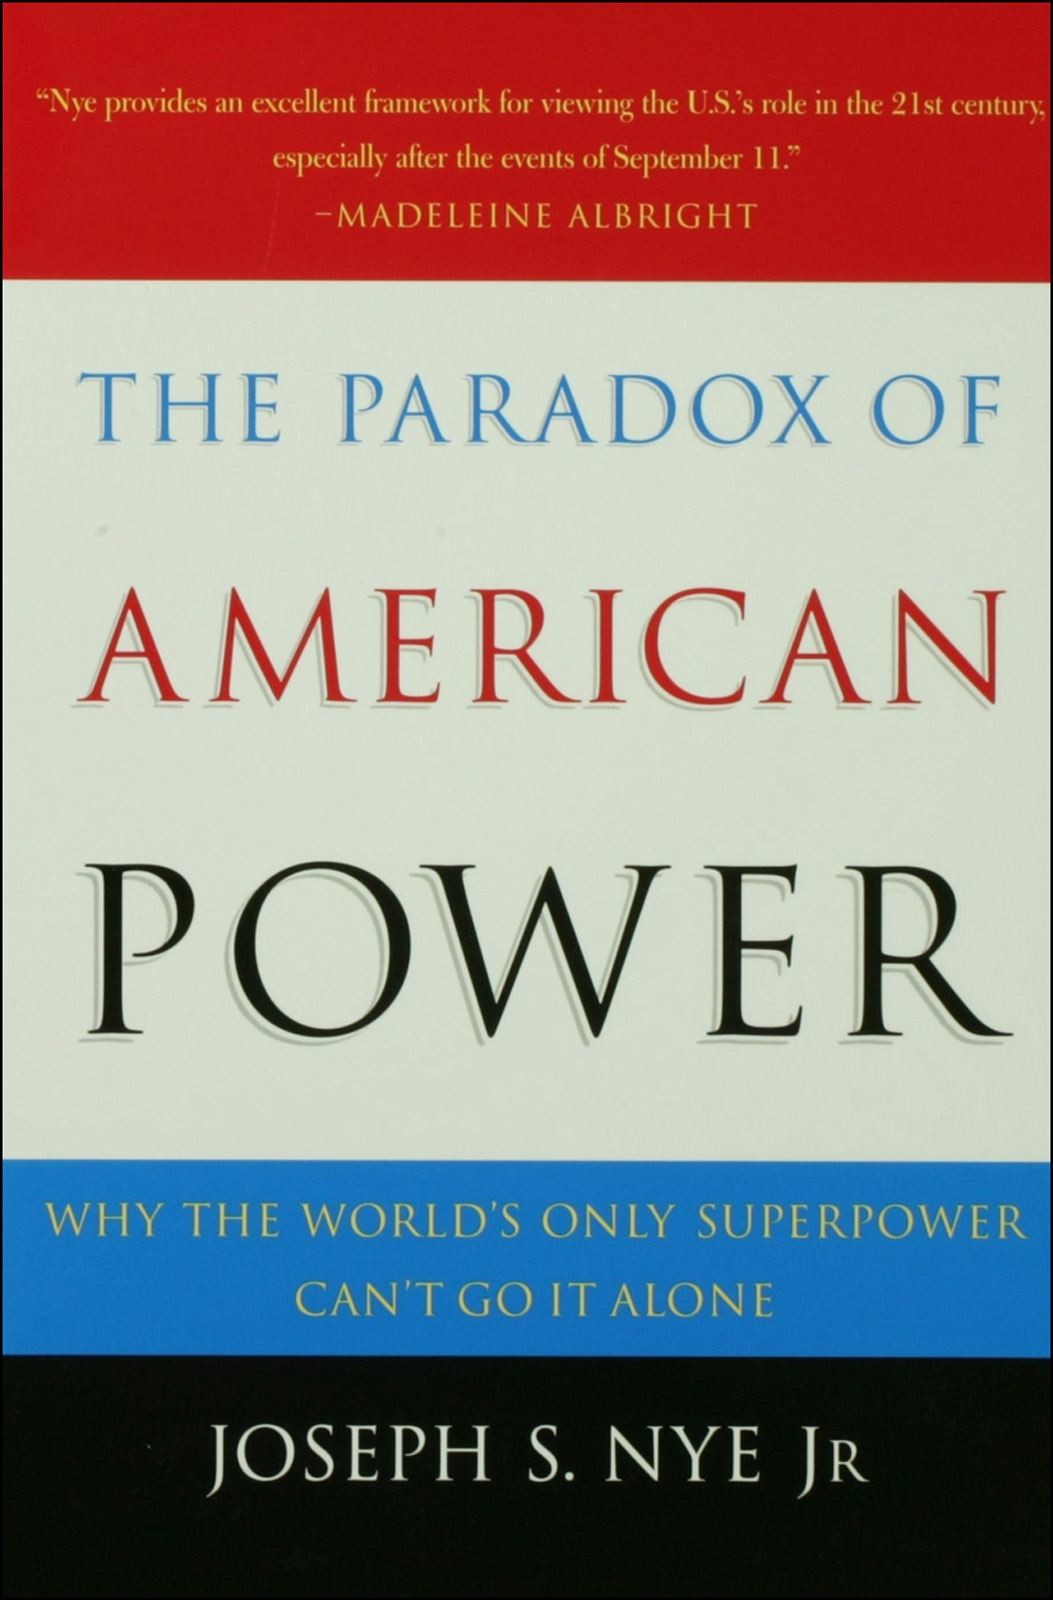 The Paradox of American Power:Why the World's Only Superpower Can't Go It Alone